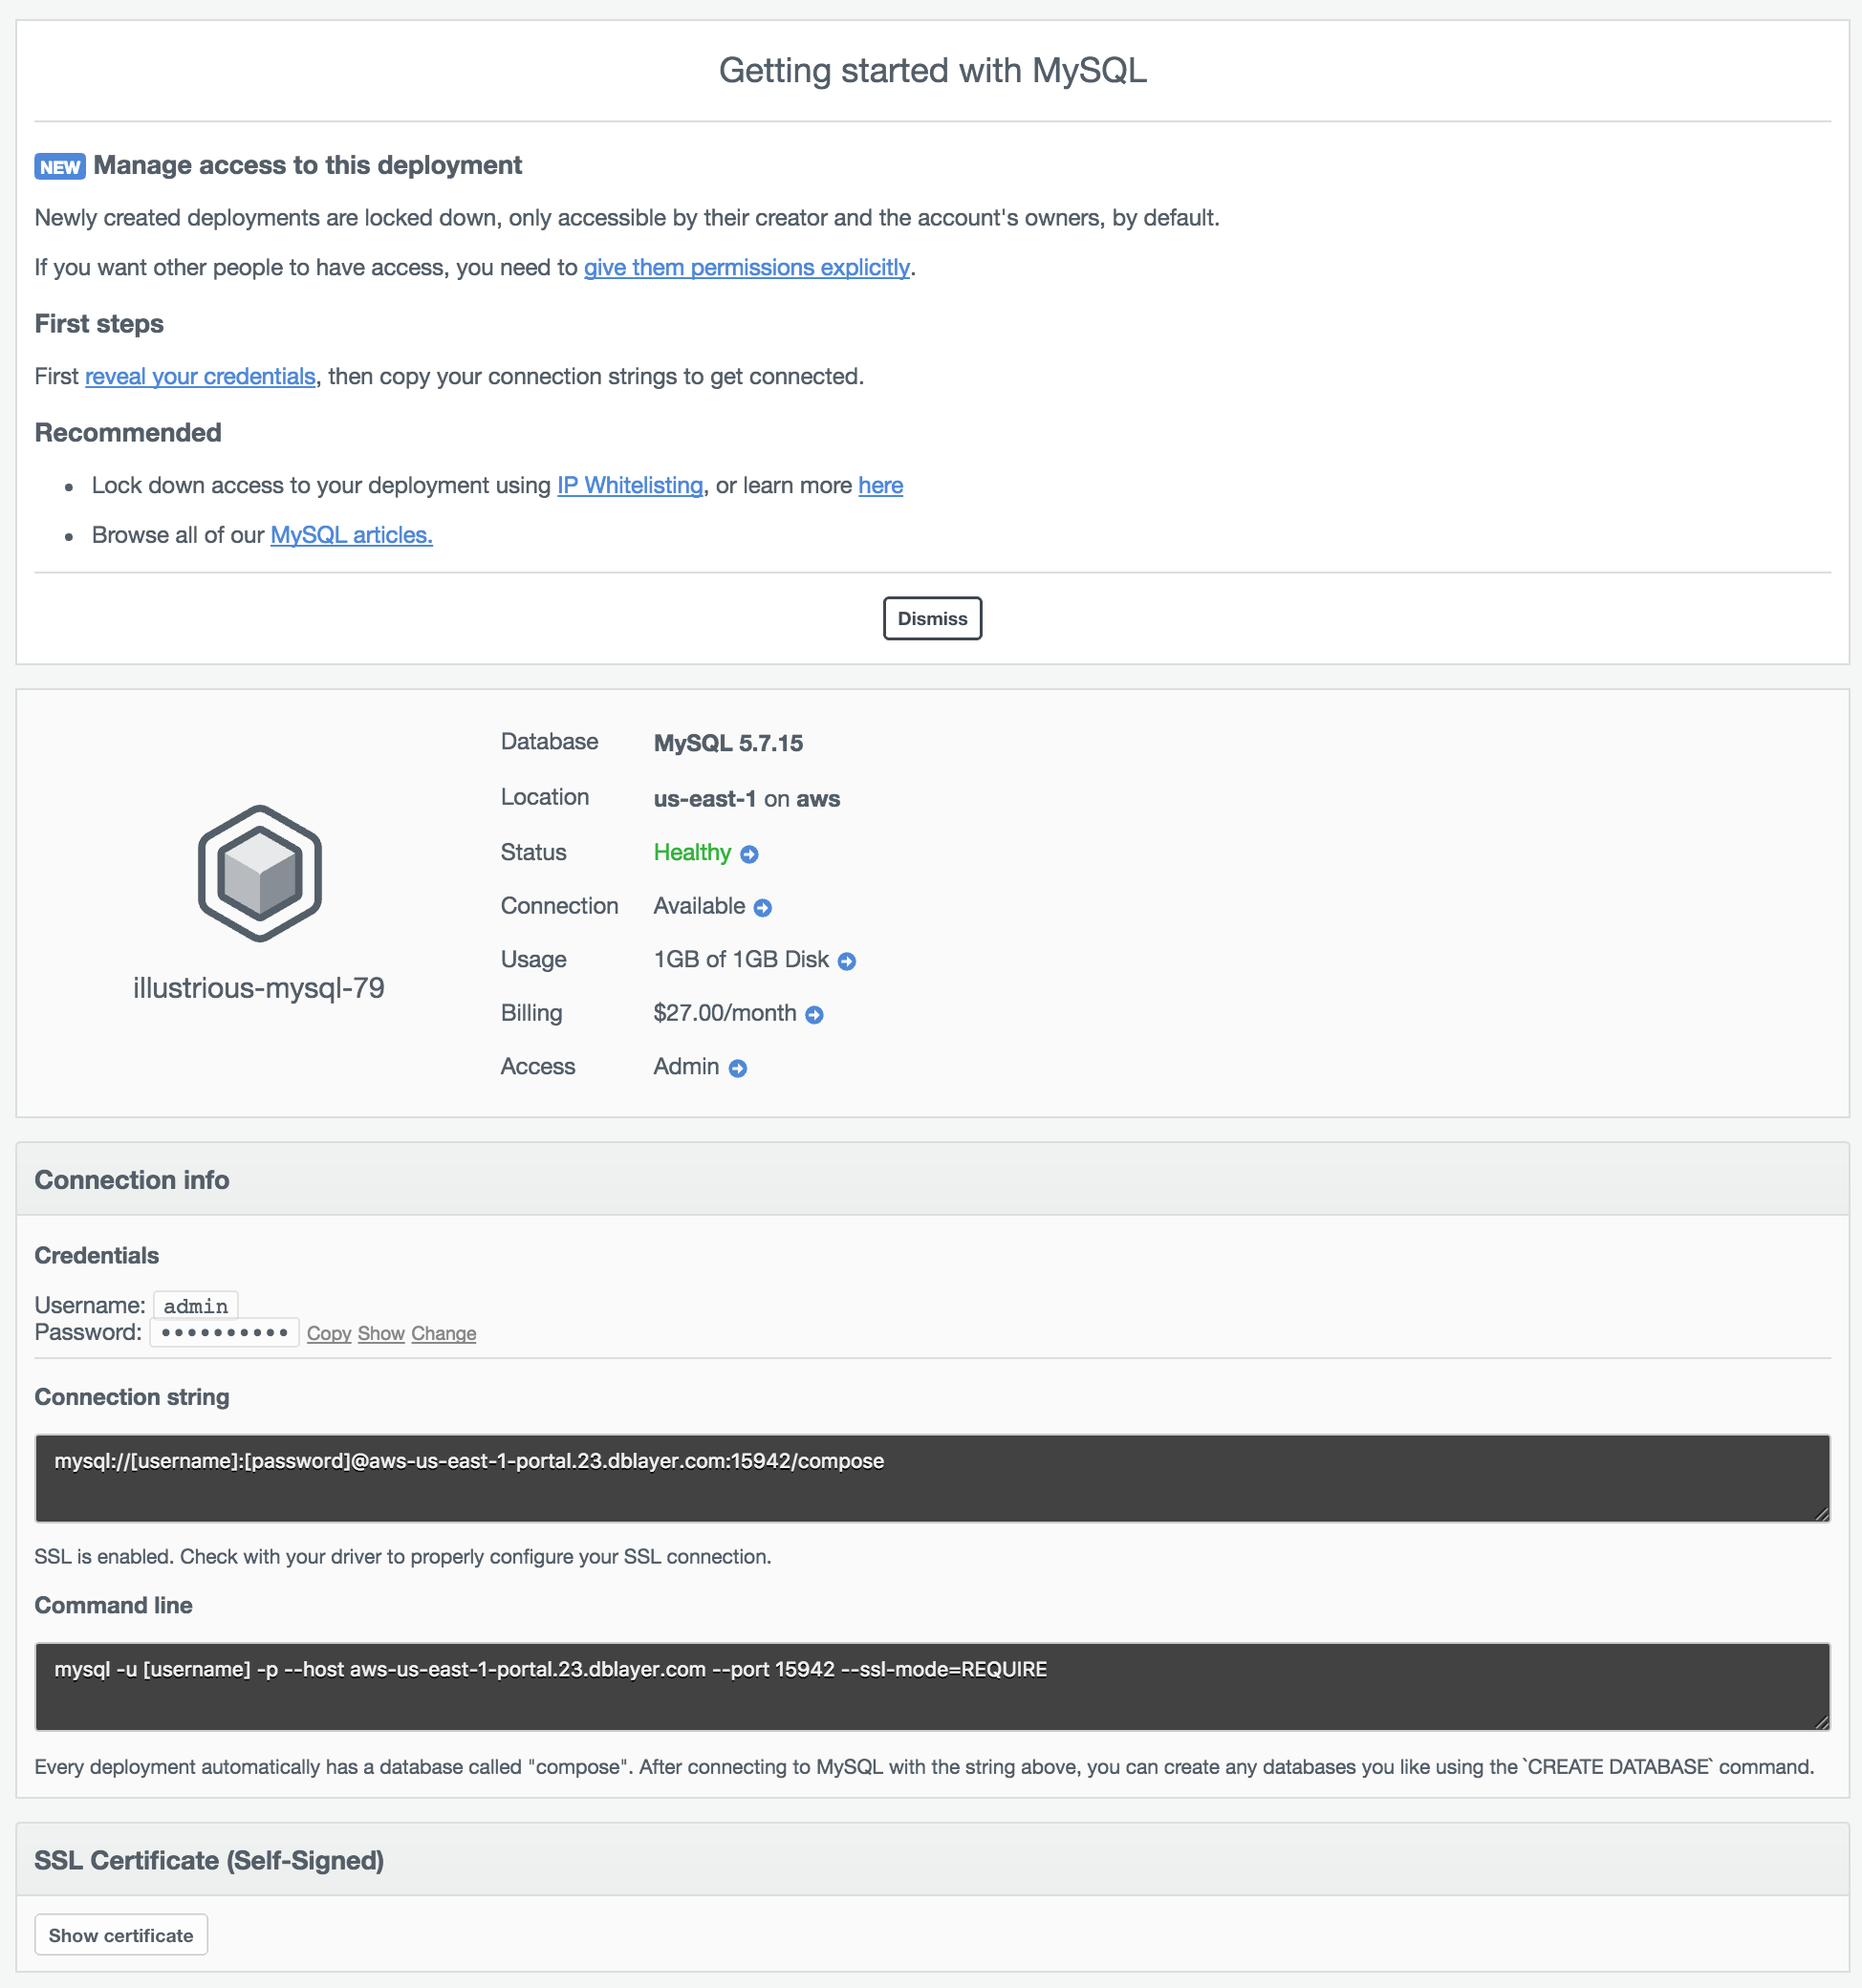 The Deployment Overview page.